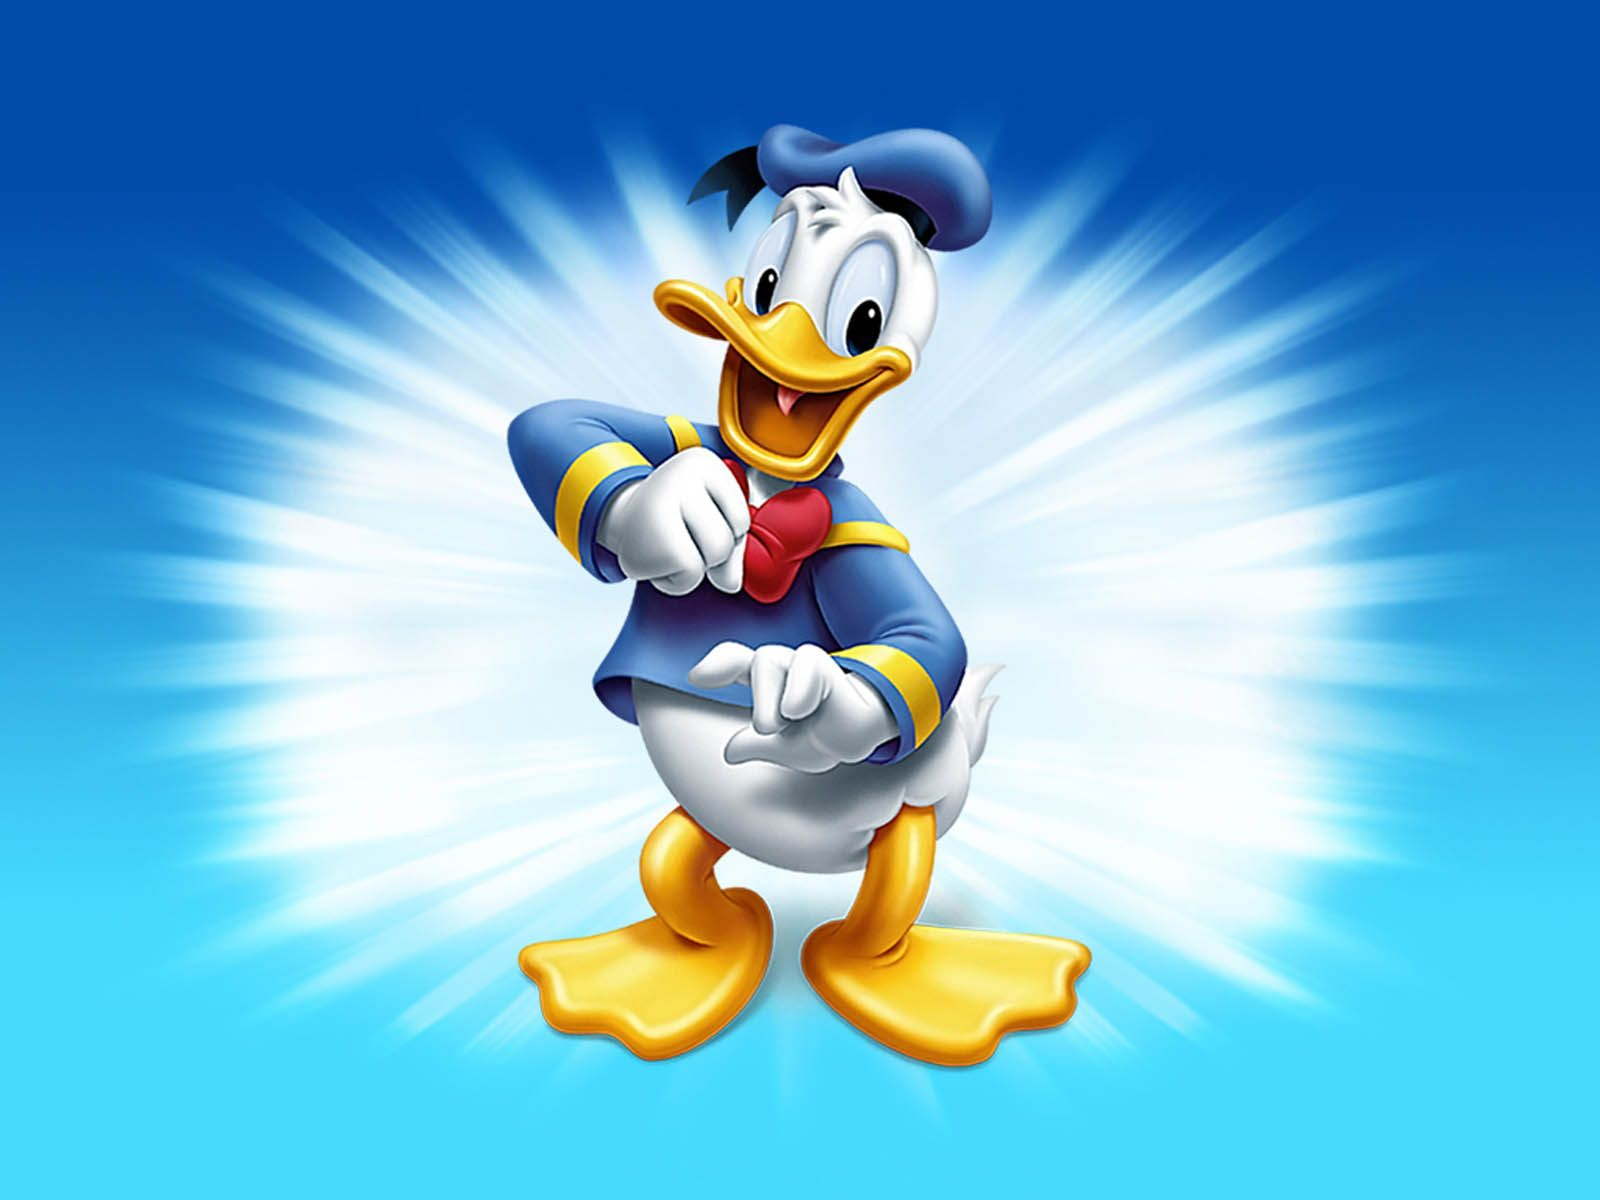 Donald Duck Hd Wallpapers Free Hd Wallpapers Cute Cartoon Wallpapers Cartoon Wallpaper Duck Wallpaper